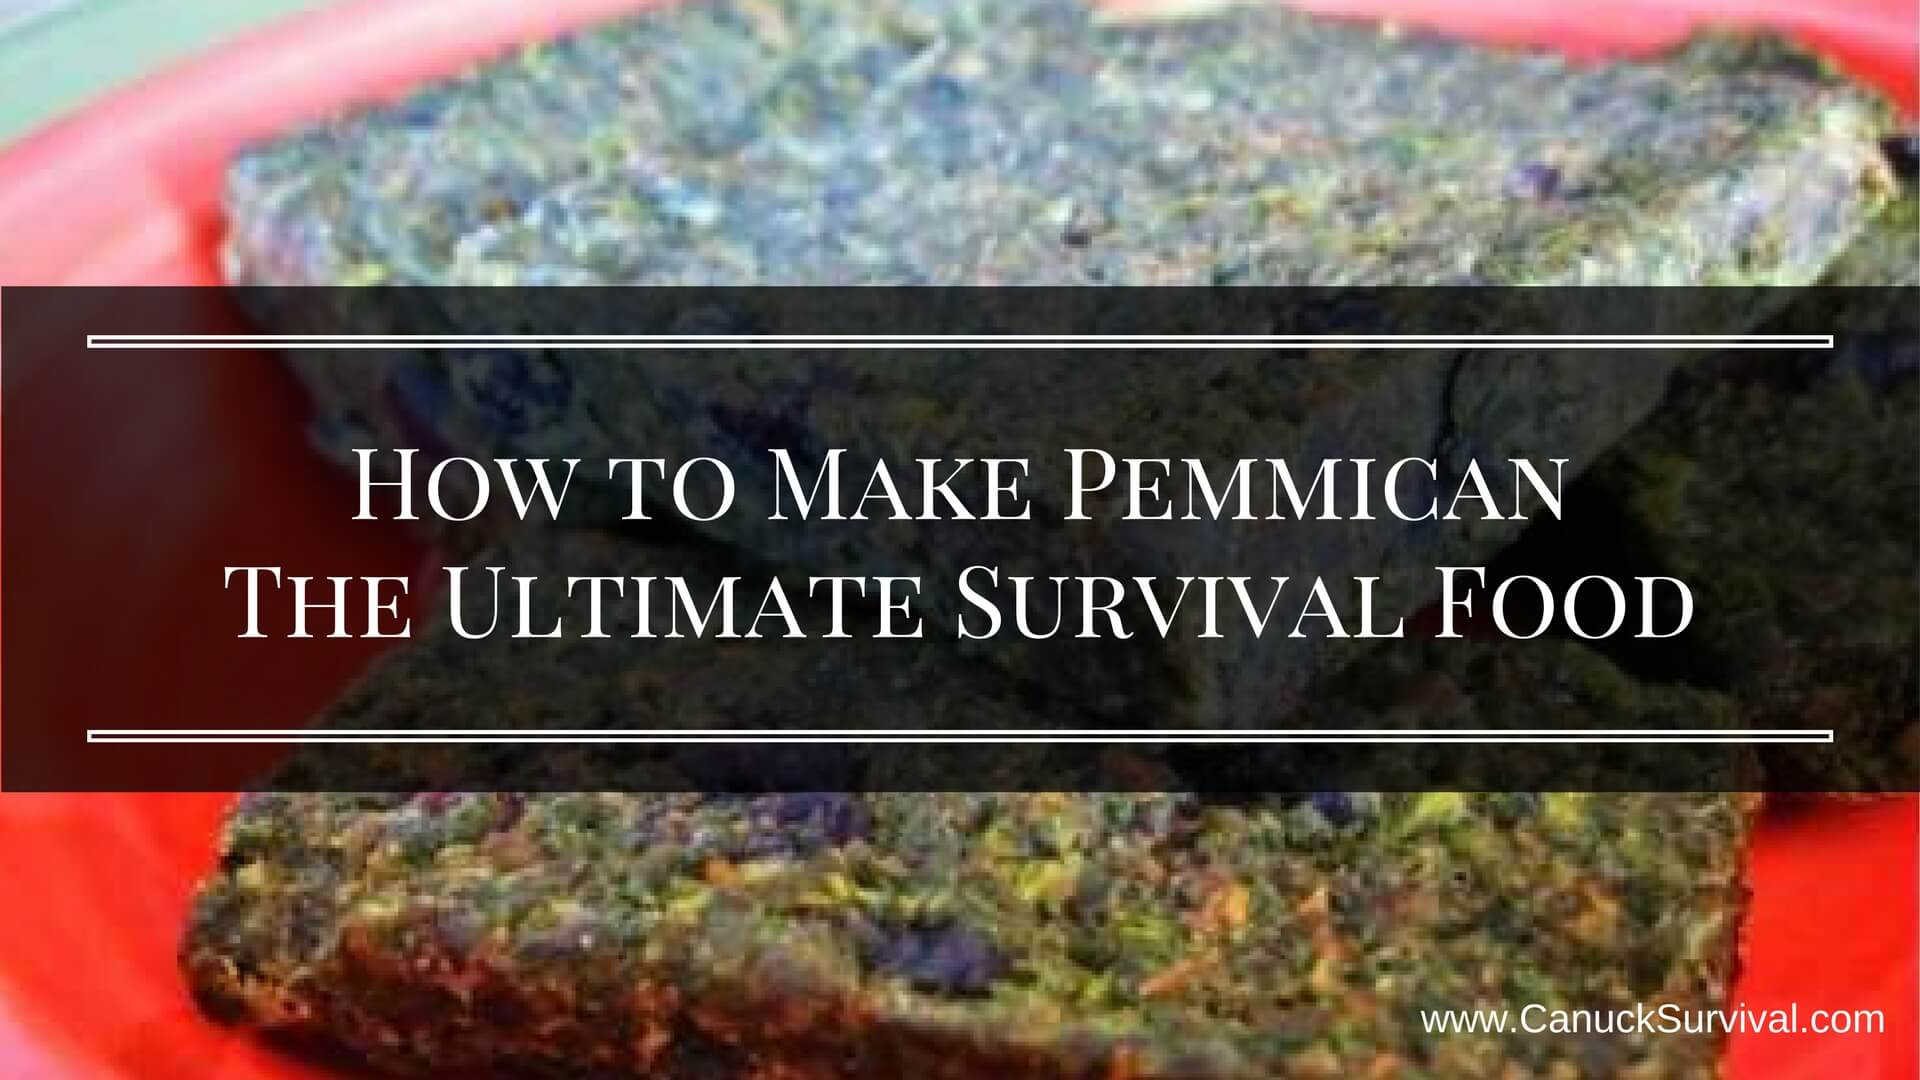 How to Make Pemmican The Ultimate Survival Food